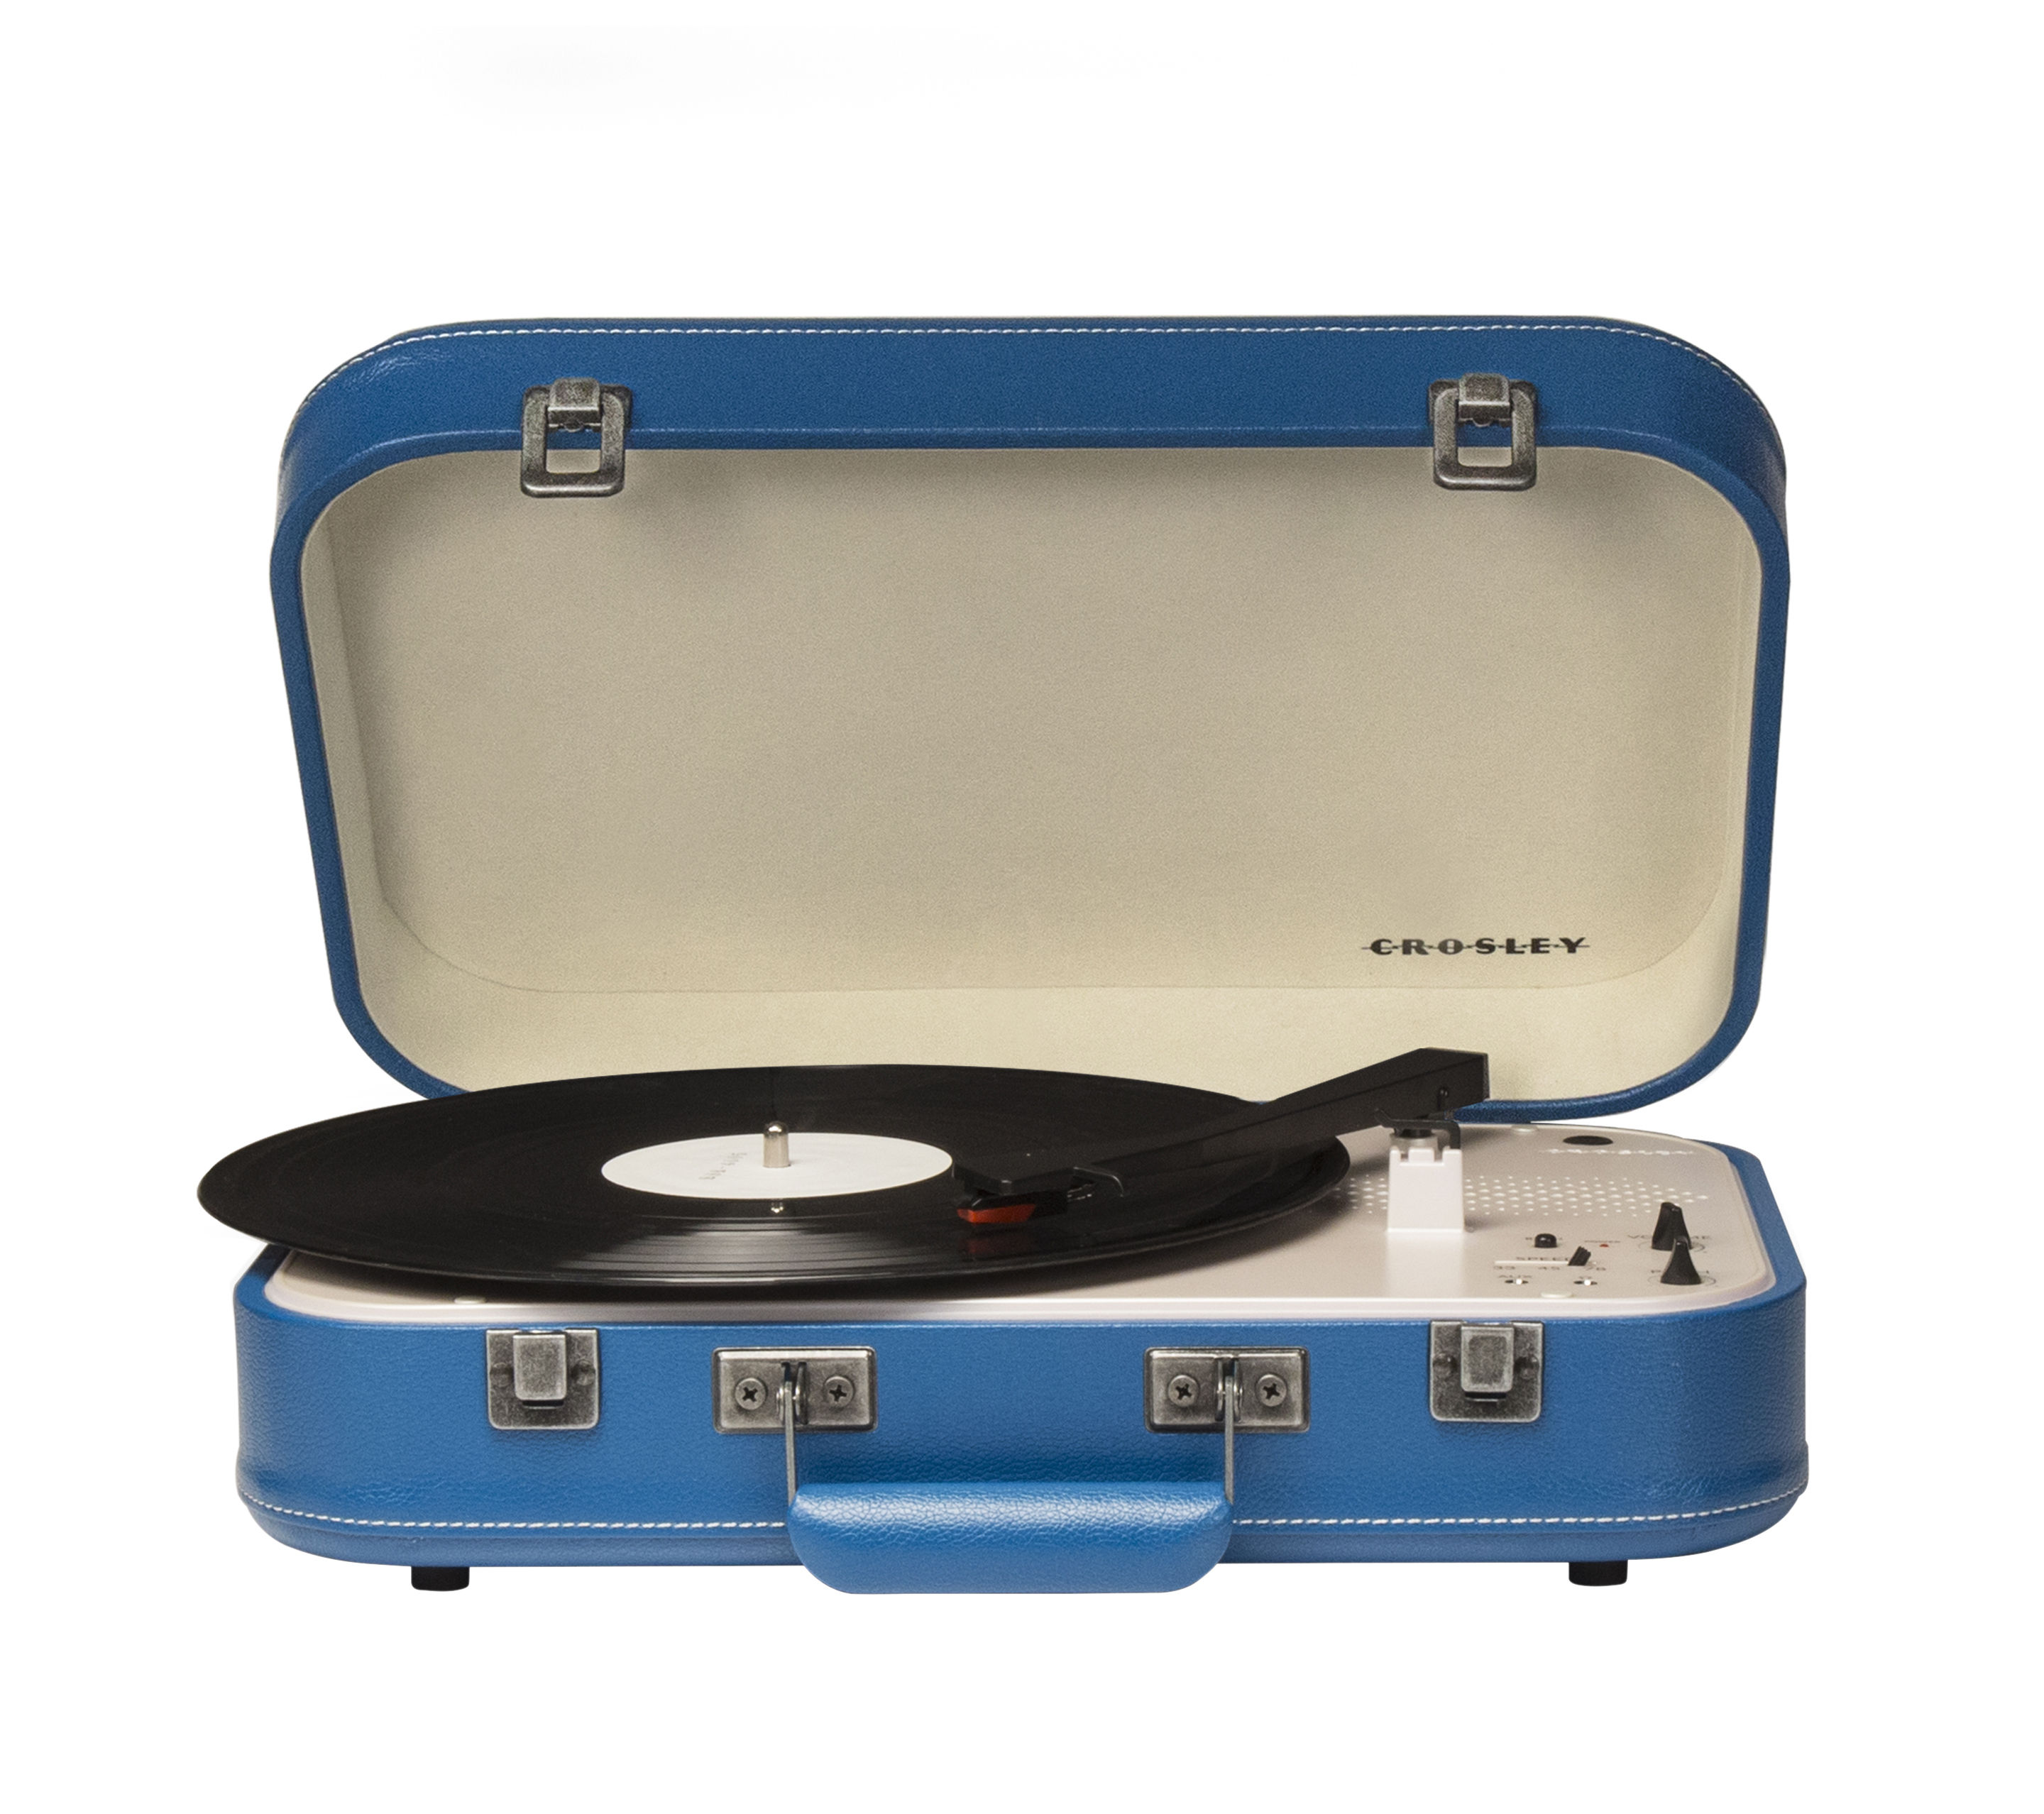 Valentine's day - Valentines Day: Our best ideas for Him - Coupe Turntable - / portable - Bluetooth by Crosley - Blue - Felt, Imitation leather, Plastic material, Wood